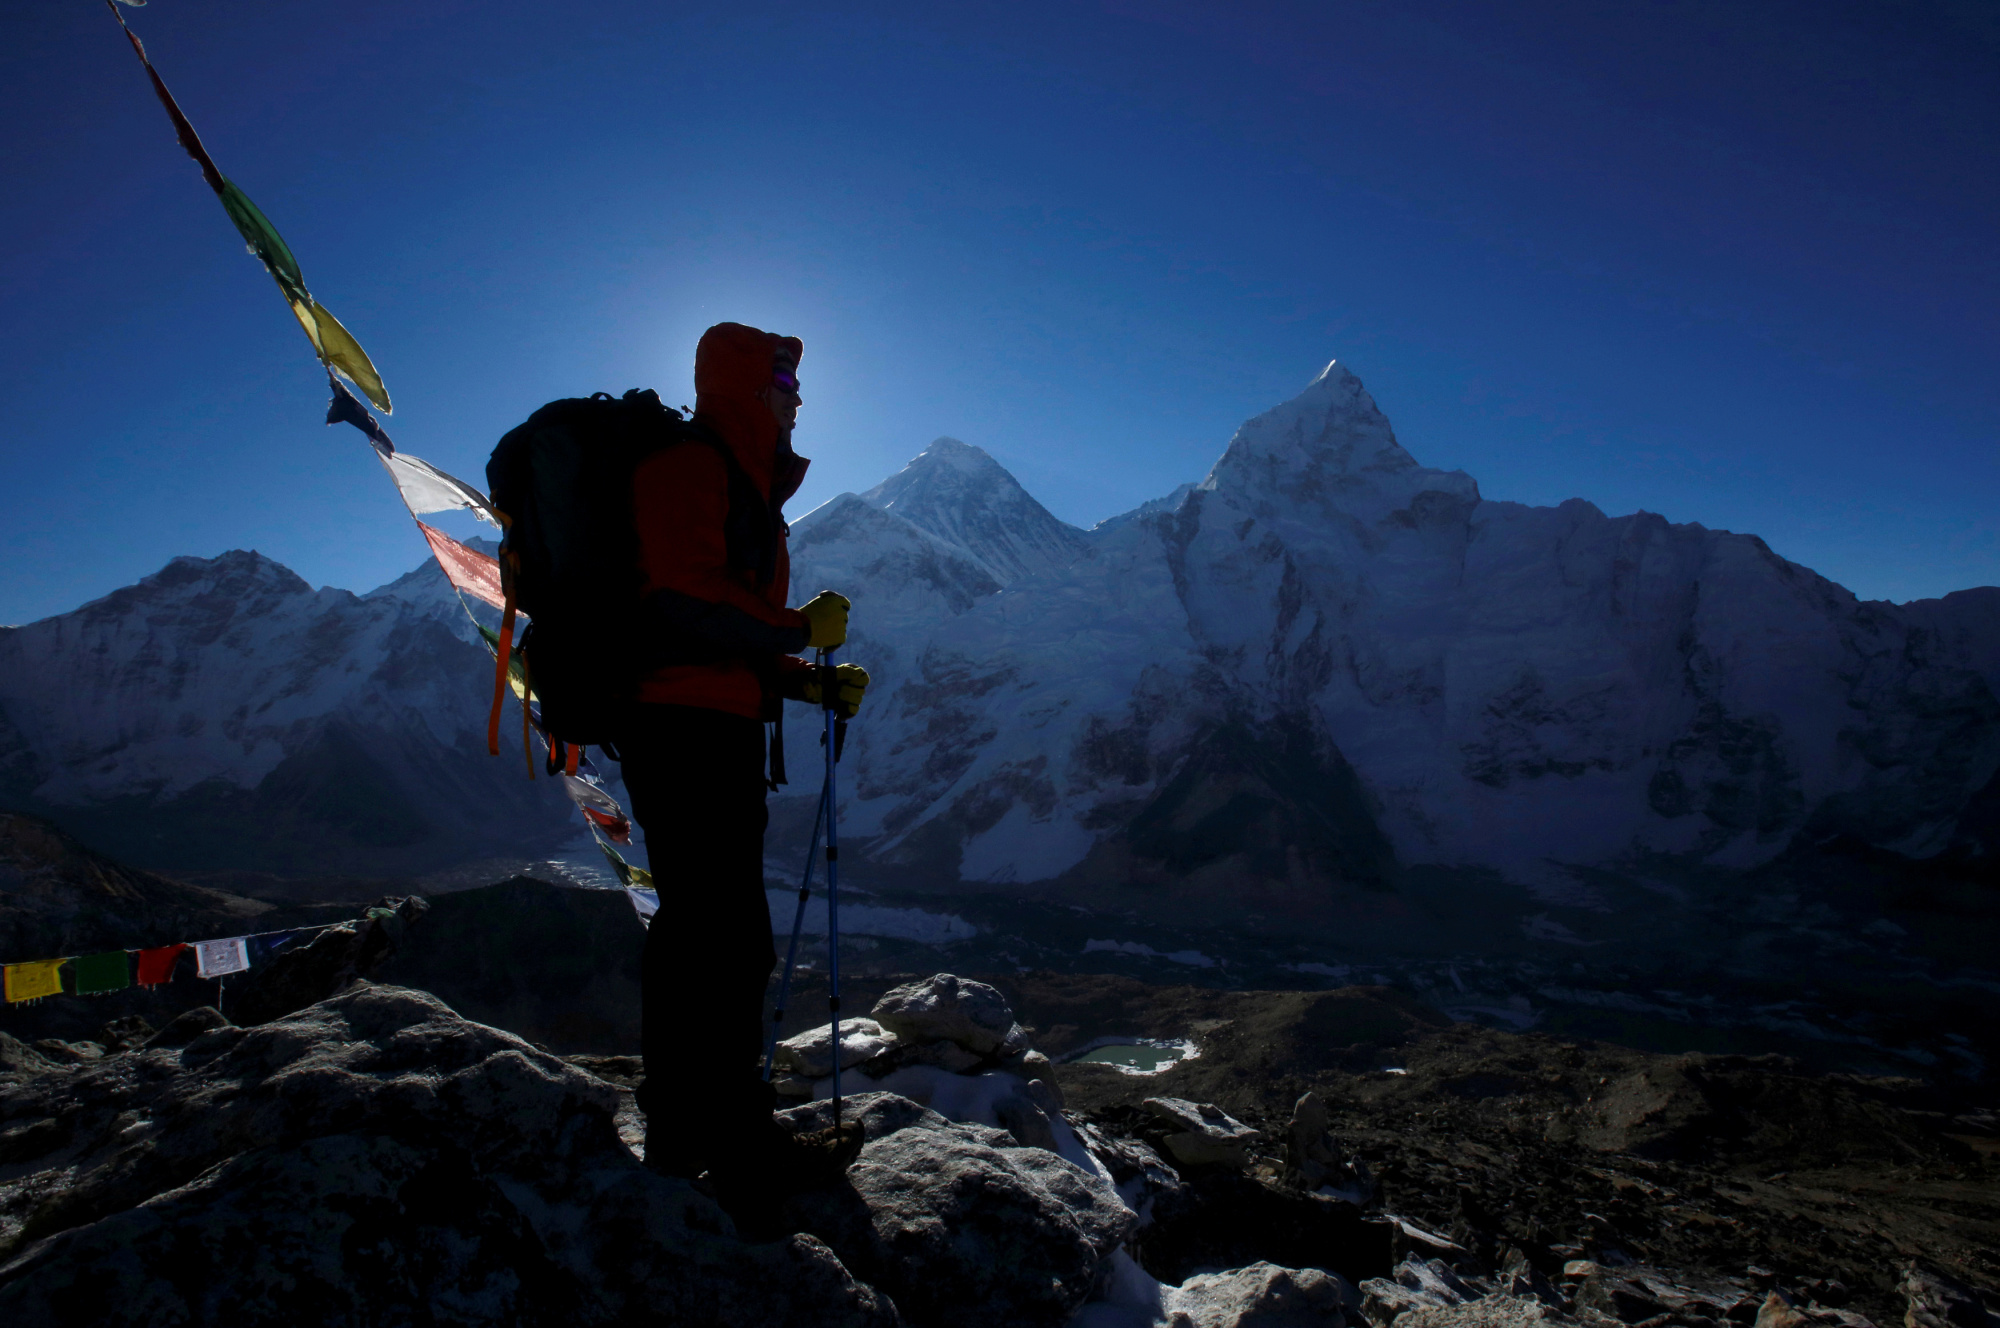 Mount Everest has increasingly drawn packs of inexperienced climbers. | REUTERS